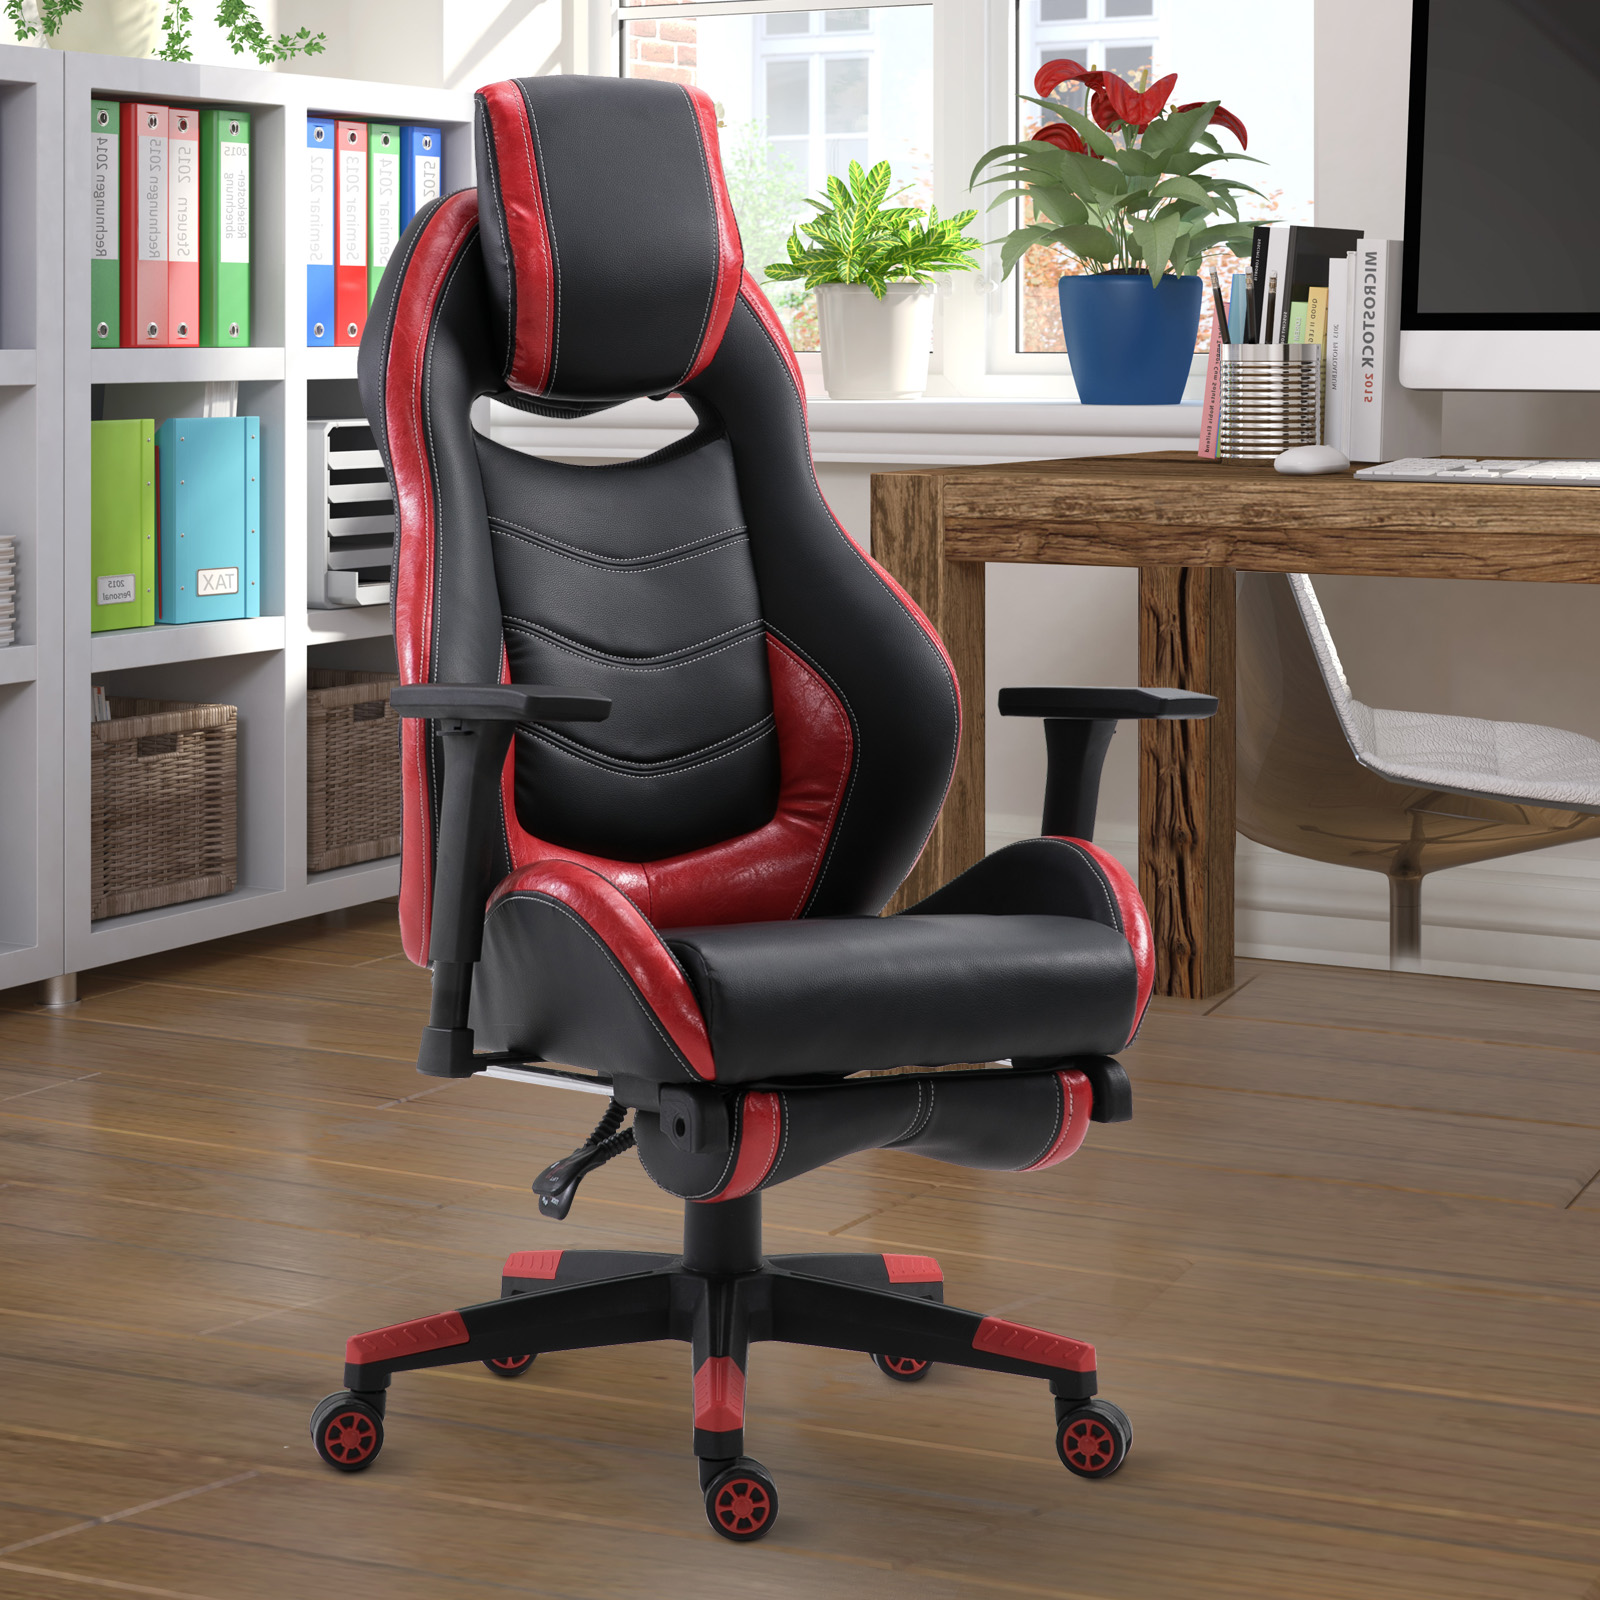 Brown Vinsetto Racing Style Gaming Chair Ergonomic Swivel PU Leather Cloth Padded Computer Office Desk Chair Reclining Adjustable Height